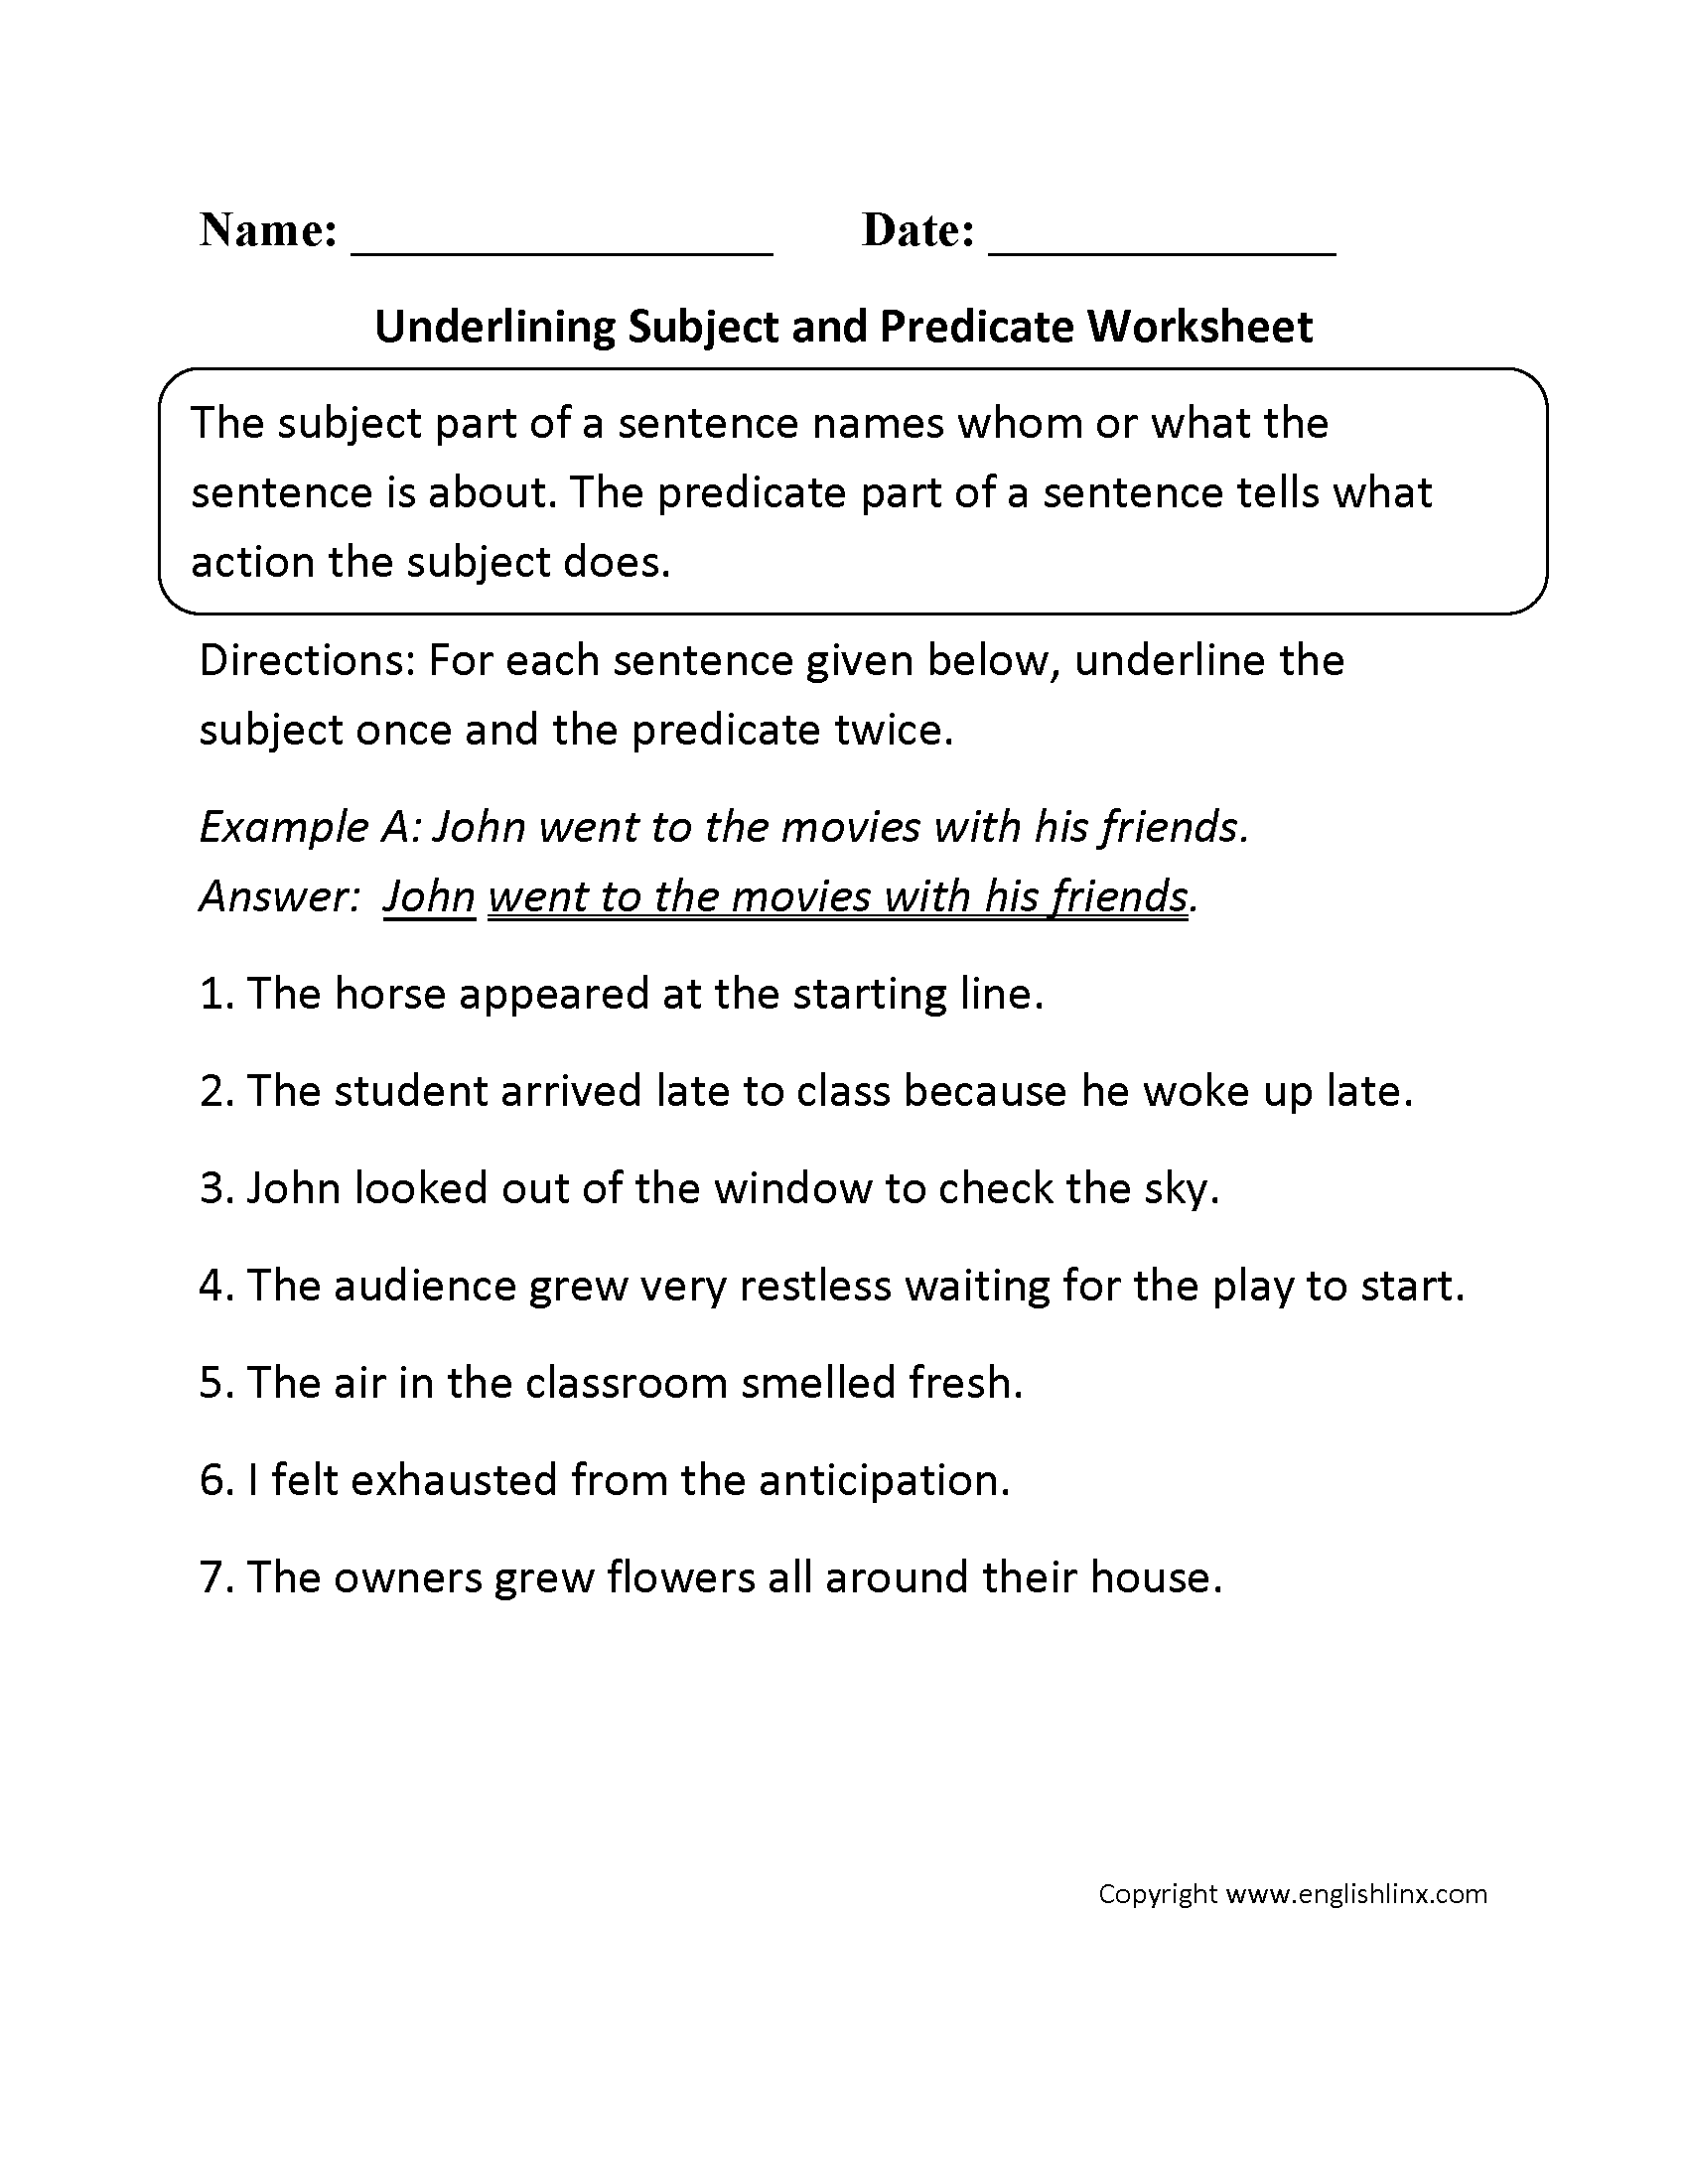 Underlining Subject Or Predicate Worksheet